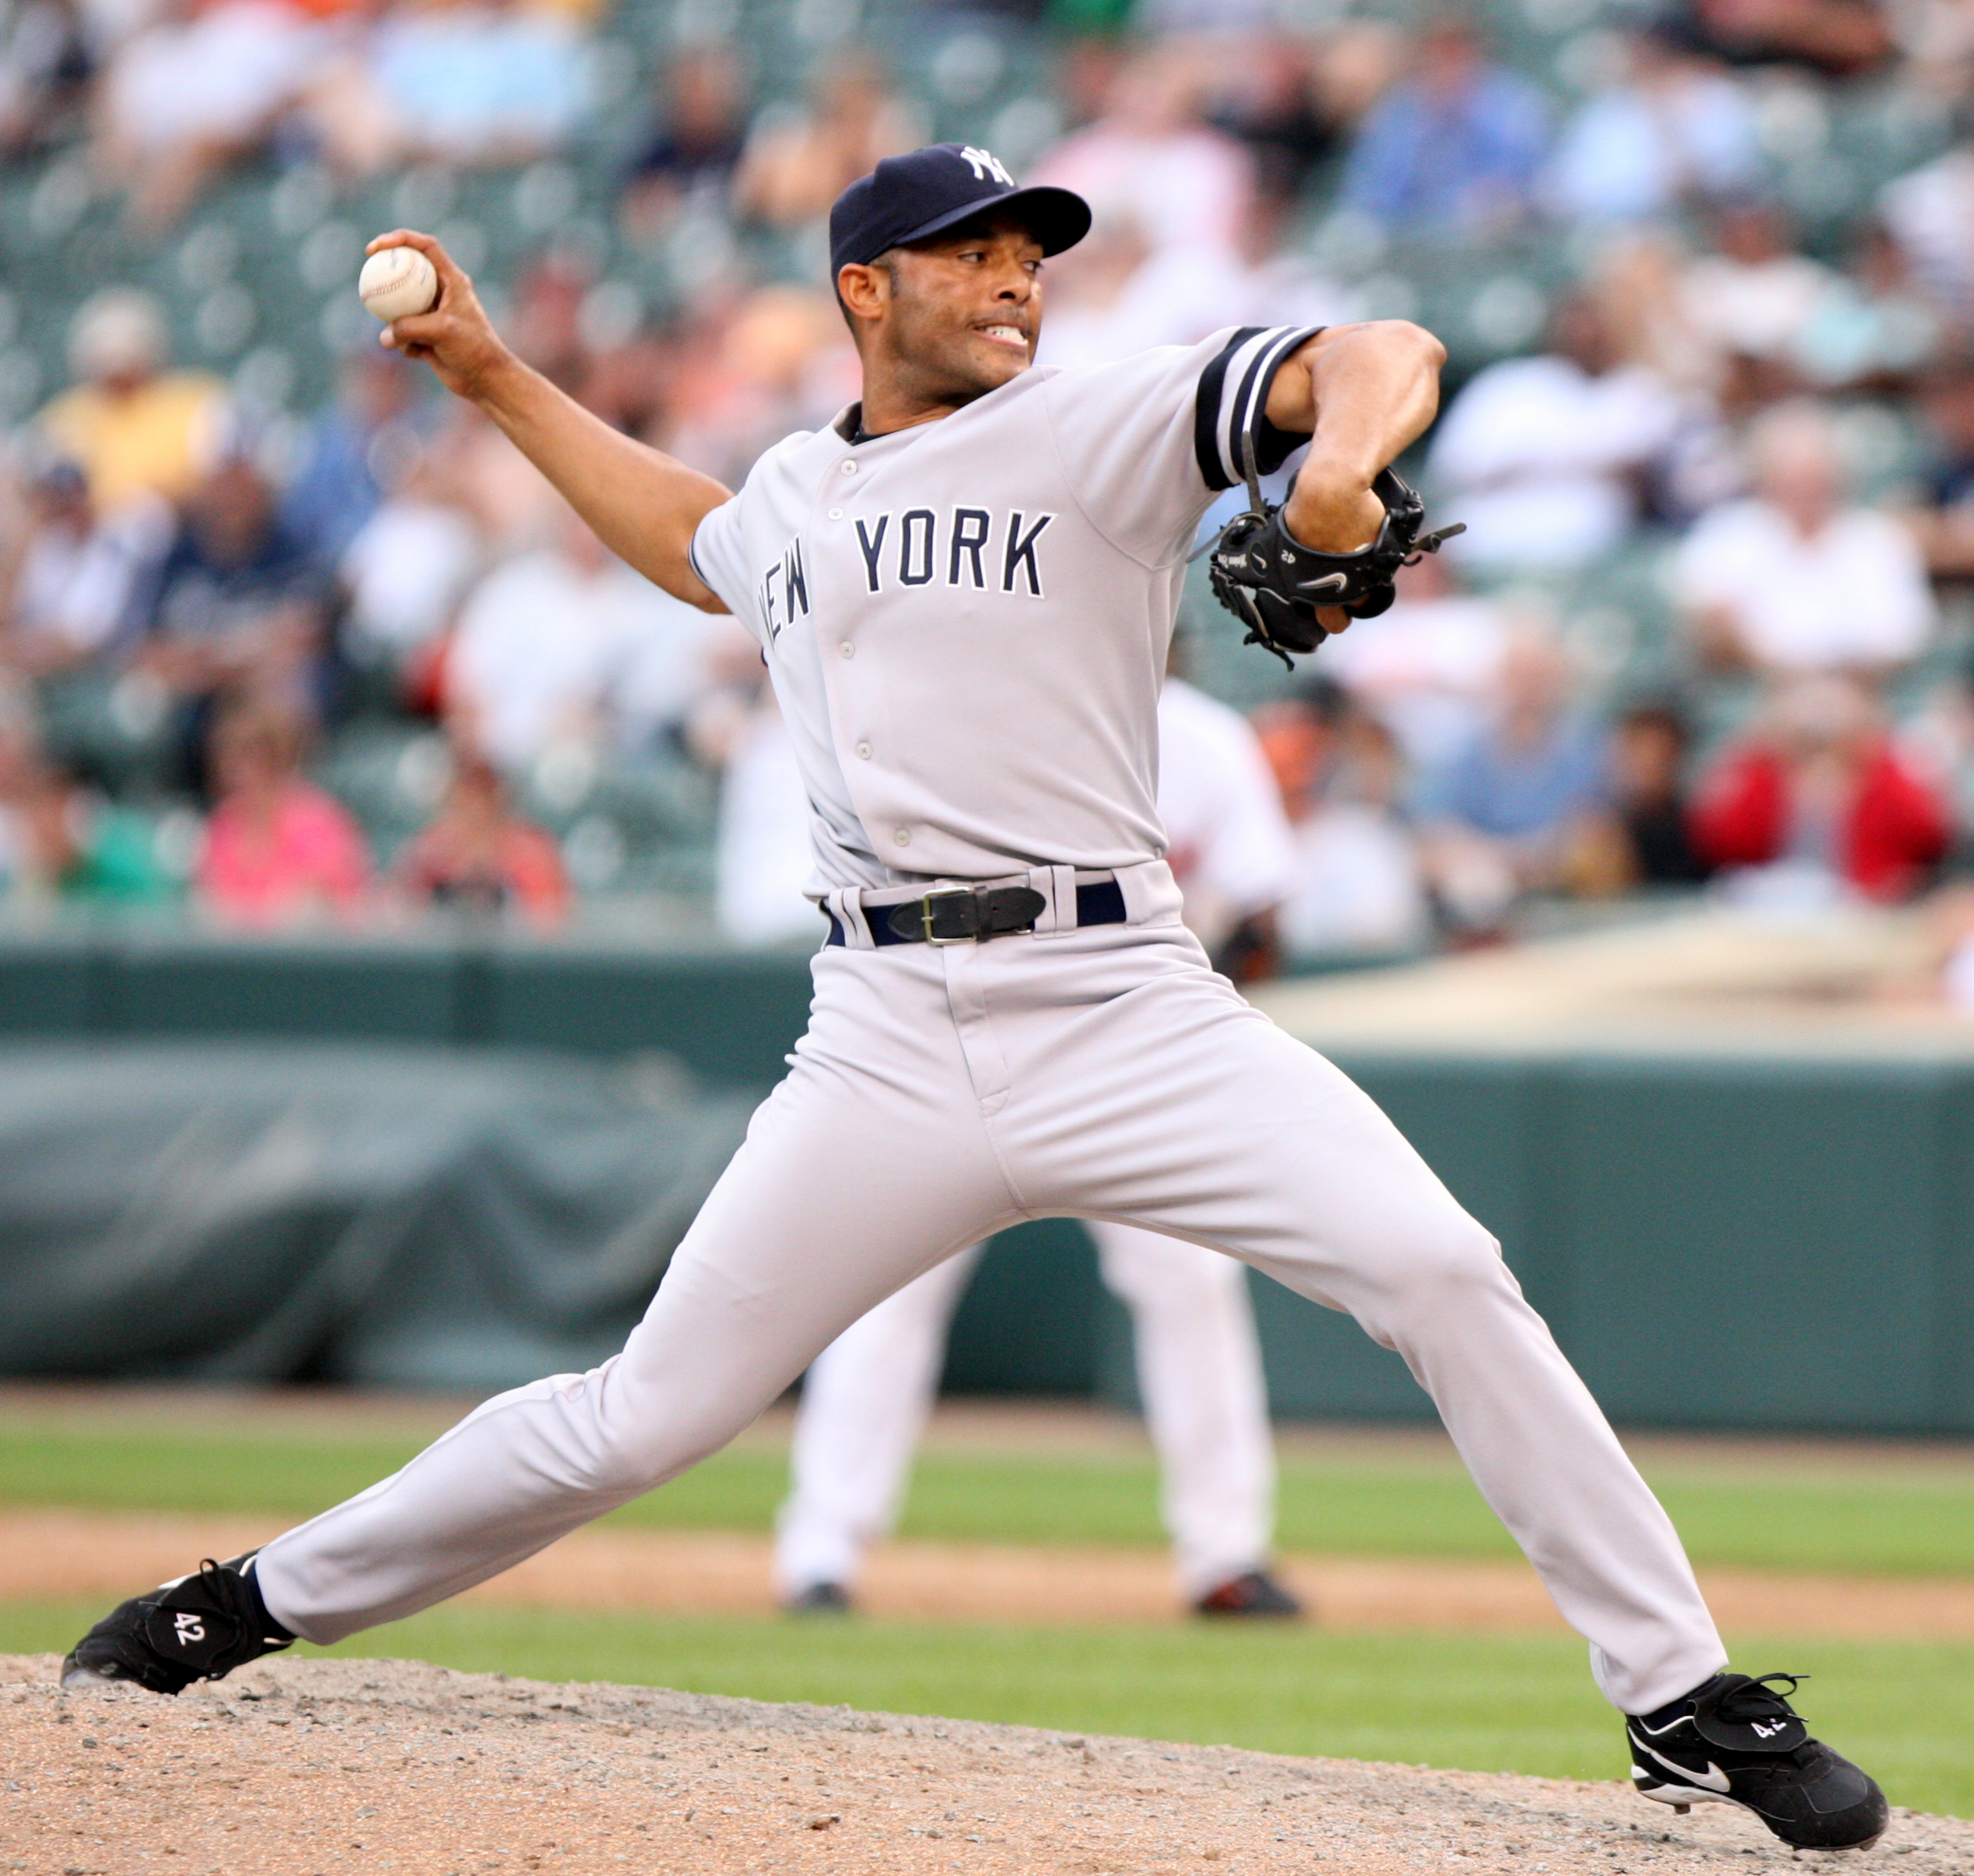 "Mariano Rivera in a gray baseball uniform and navy blue cap stands on a dirt mound. He is striding forward to the right as he clutches a baseball behind his head. His uniform reads ""New York"" in navy blue letters across the chest. His face is contorted in concentration."